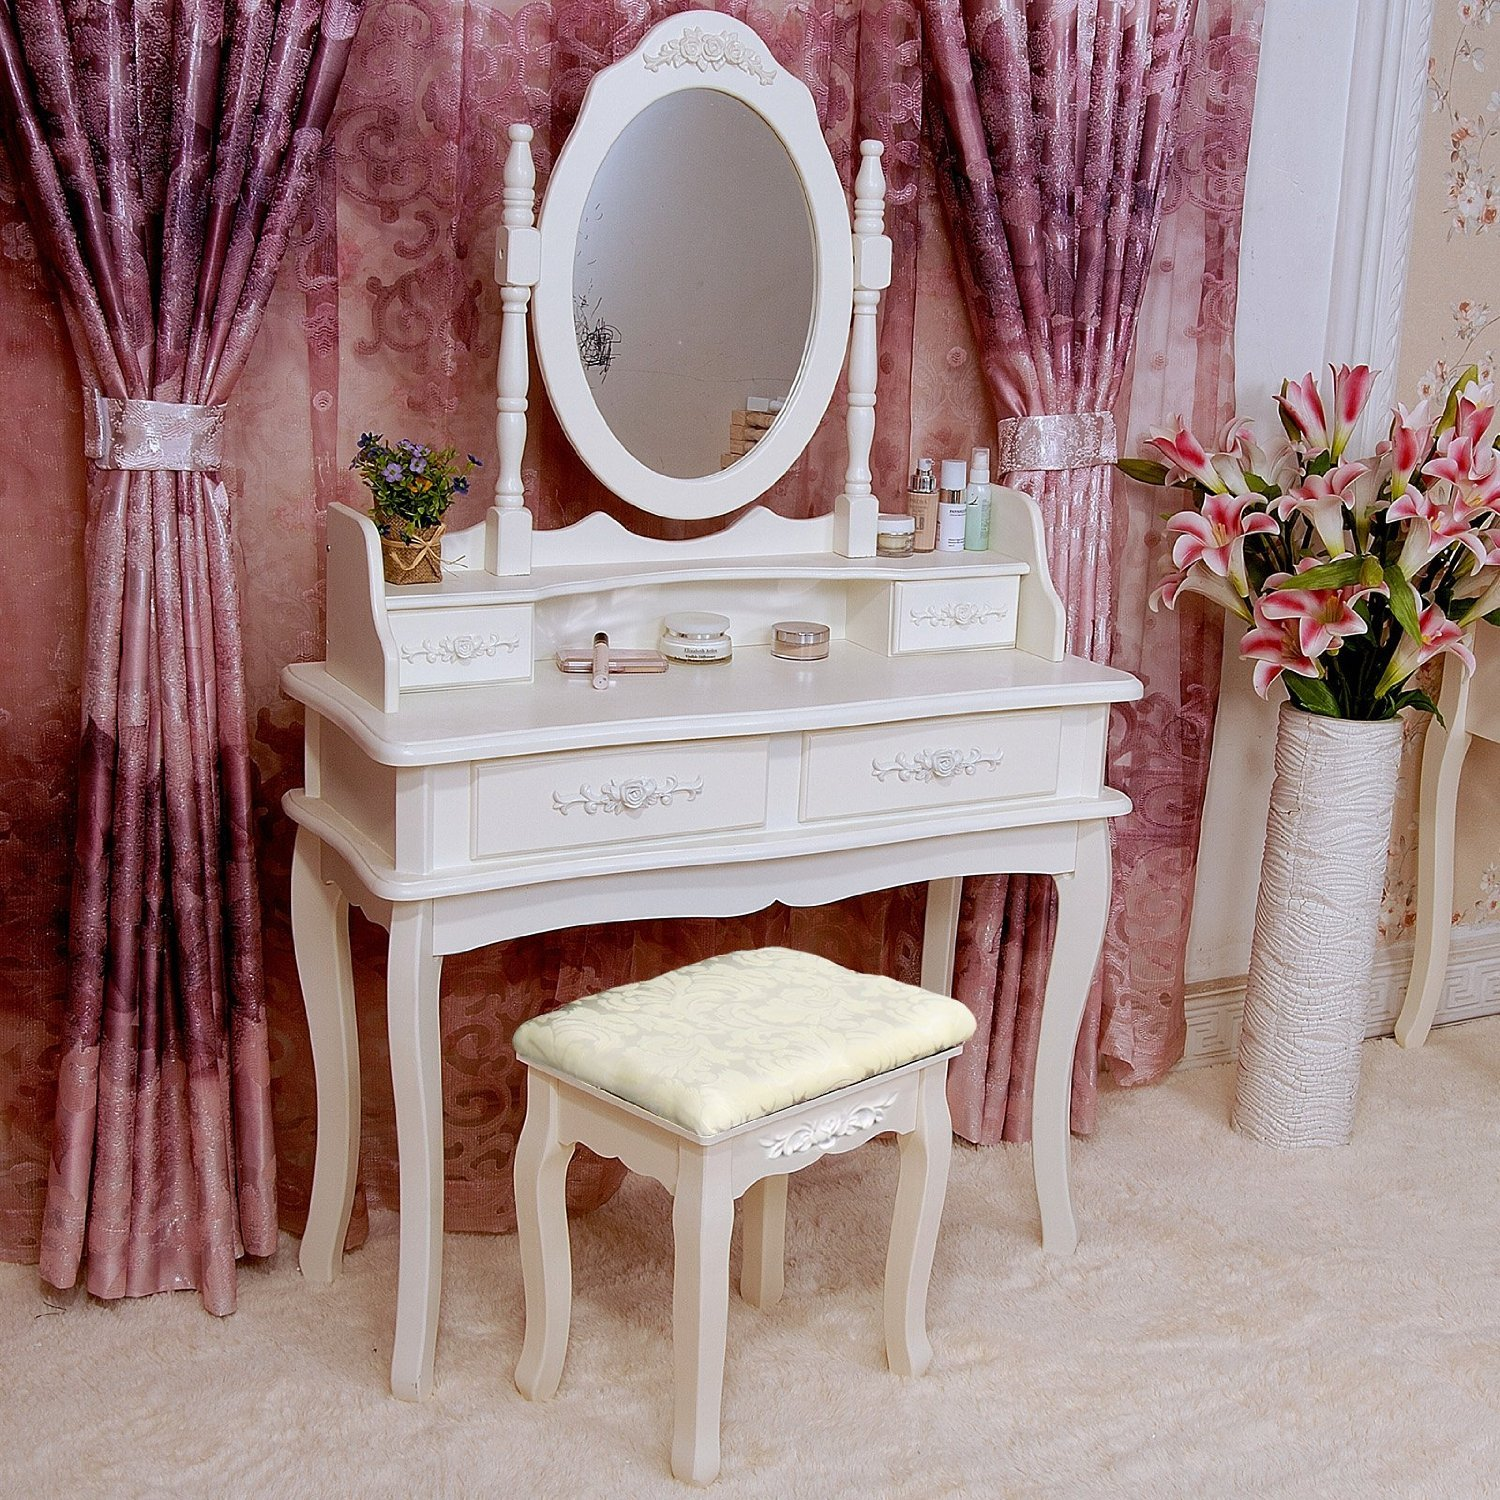 Amazon.com Tribesigns Makeup Vanity Table Set Bedroom Dressing Table with Stool and Mirror (1 Mirror + 4 Drawer) Kitchen \u0026 Dining & Amazon.com: Tribesigns Makeup Vanity Table Set Bedroom Dressing ...